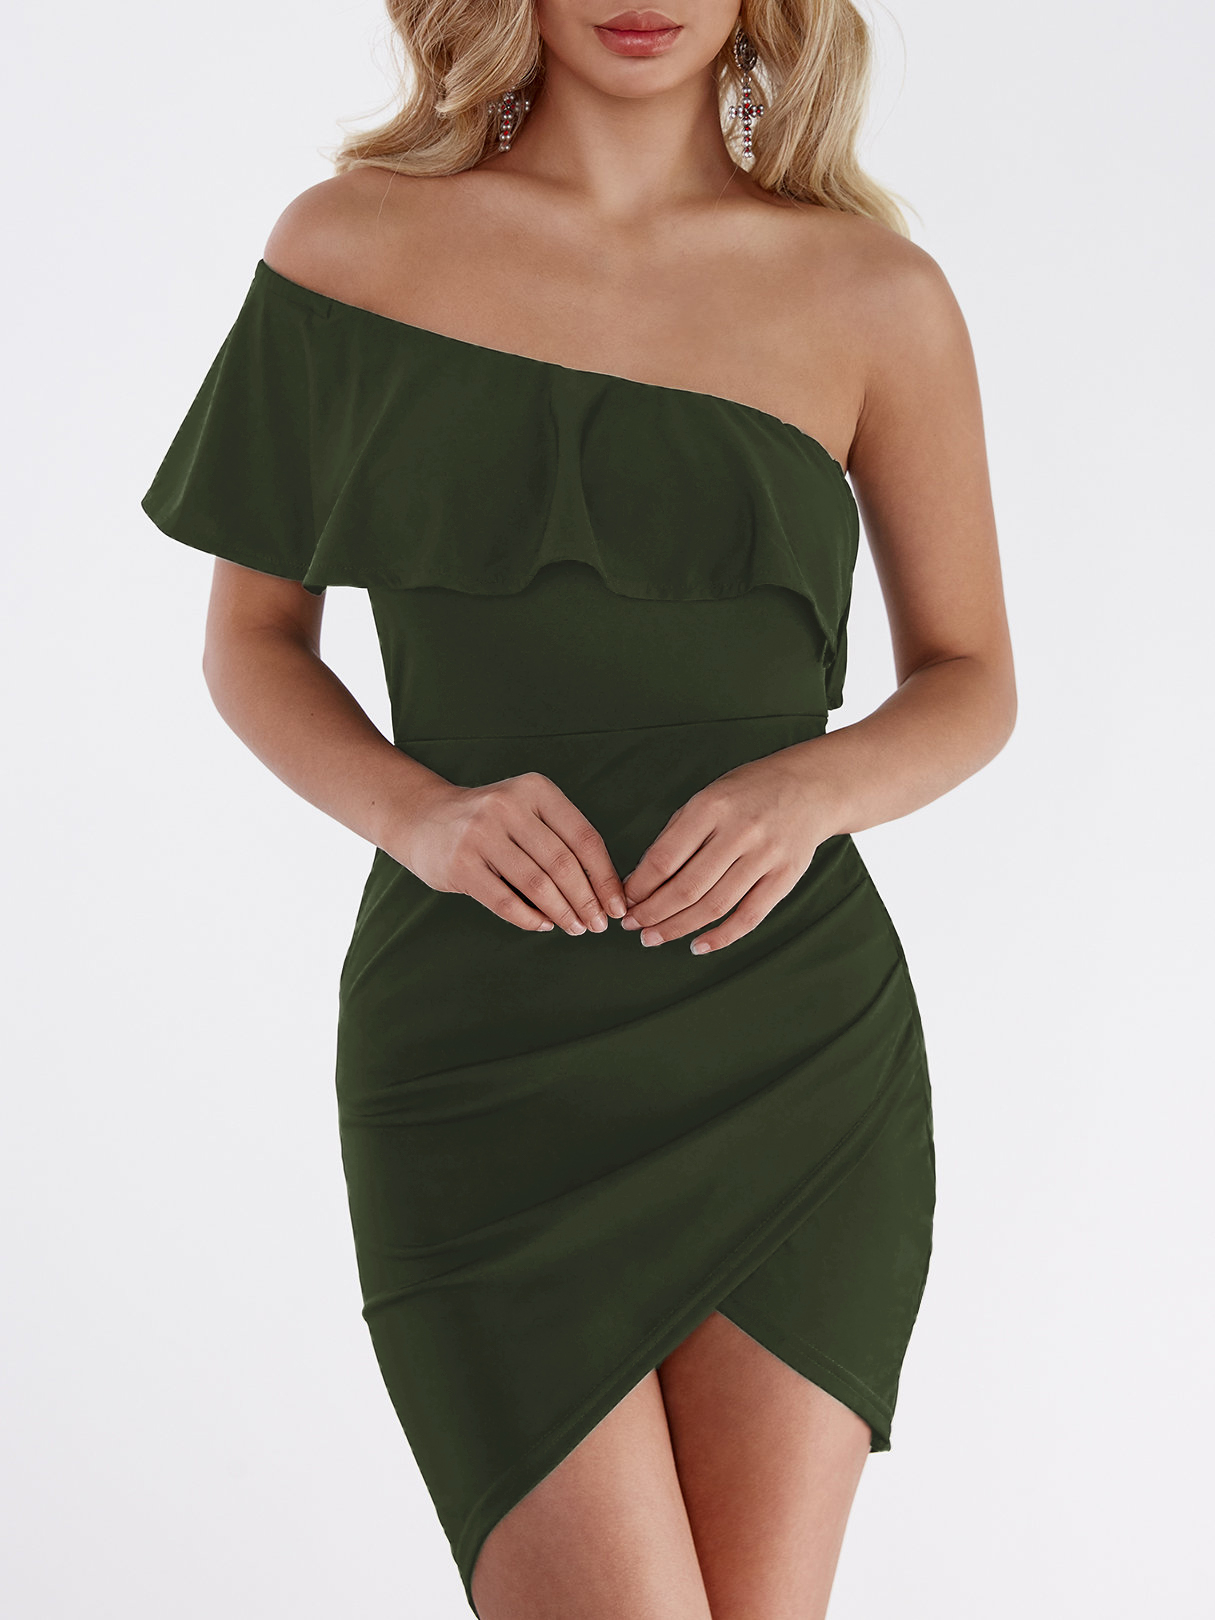 Image of One Shoulder Asymmetrical Bodycon Mini Dress in Army Green